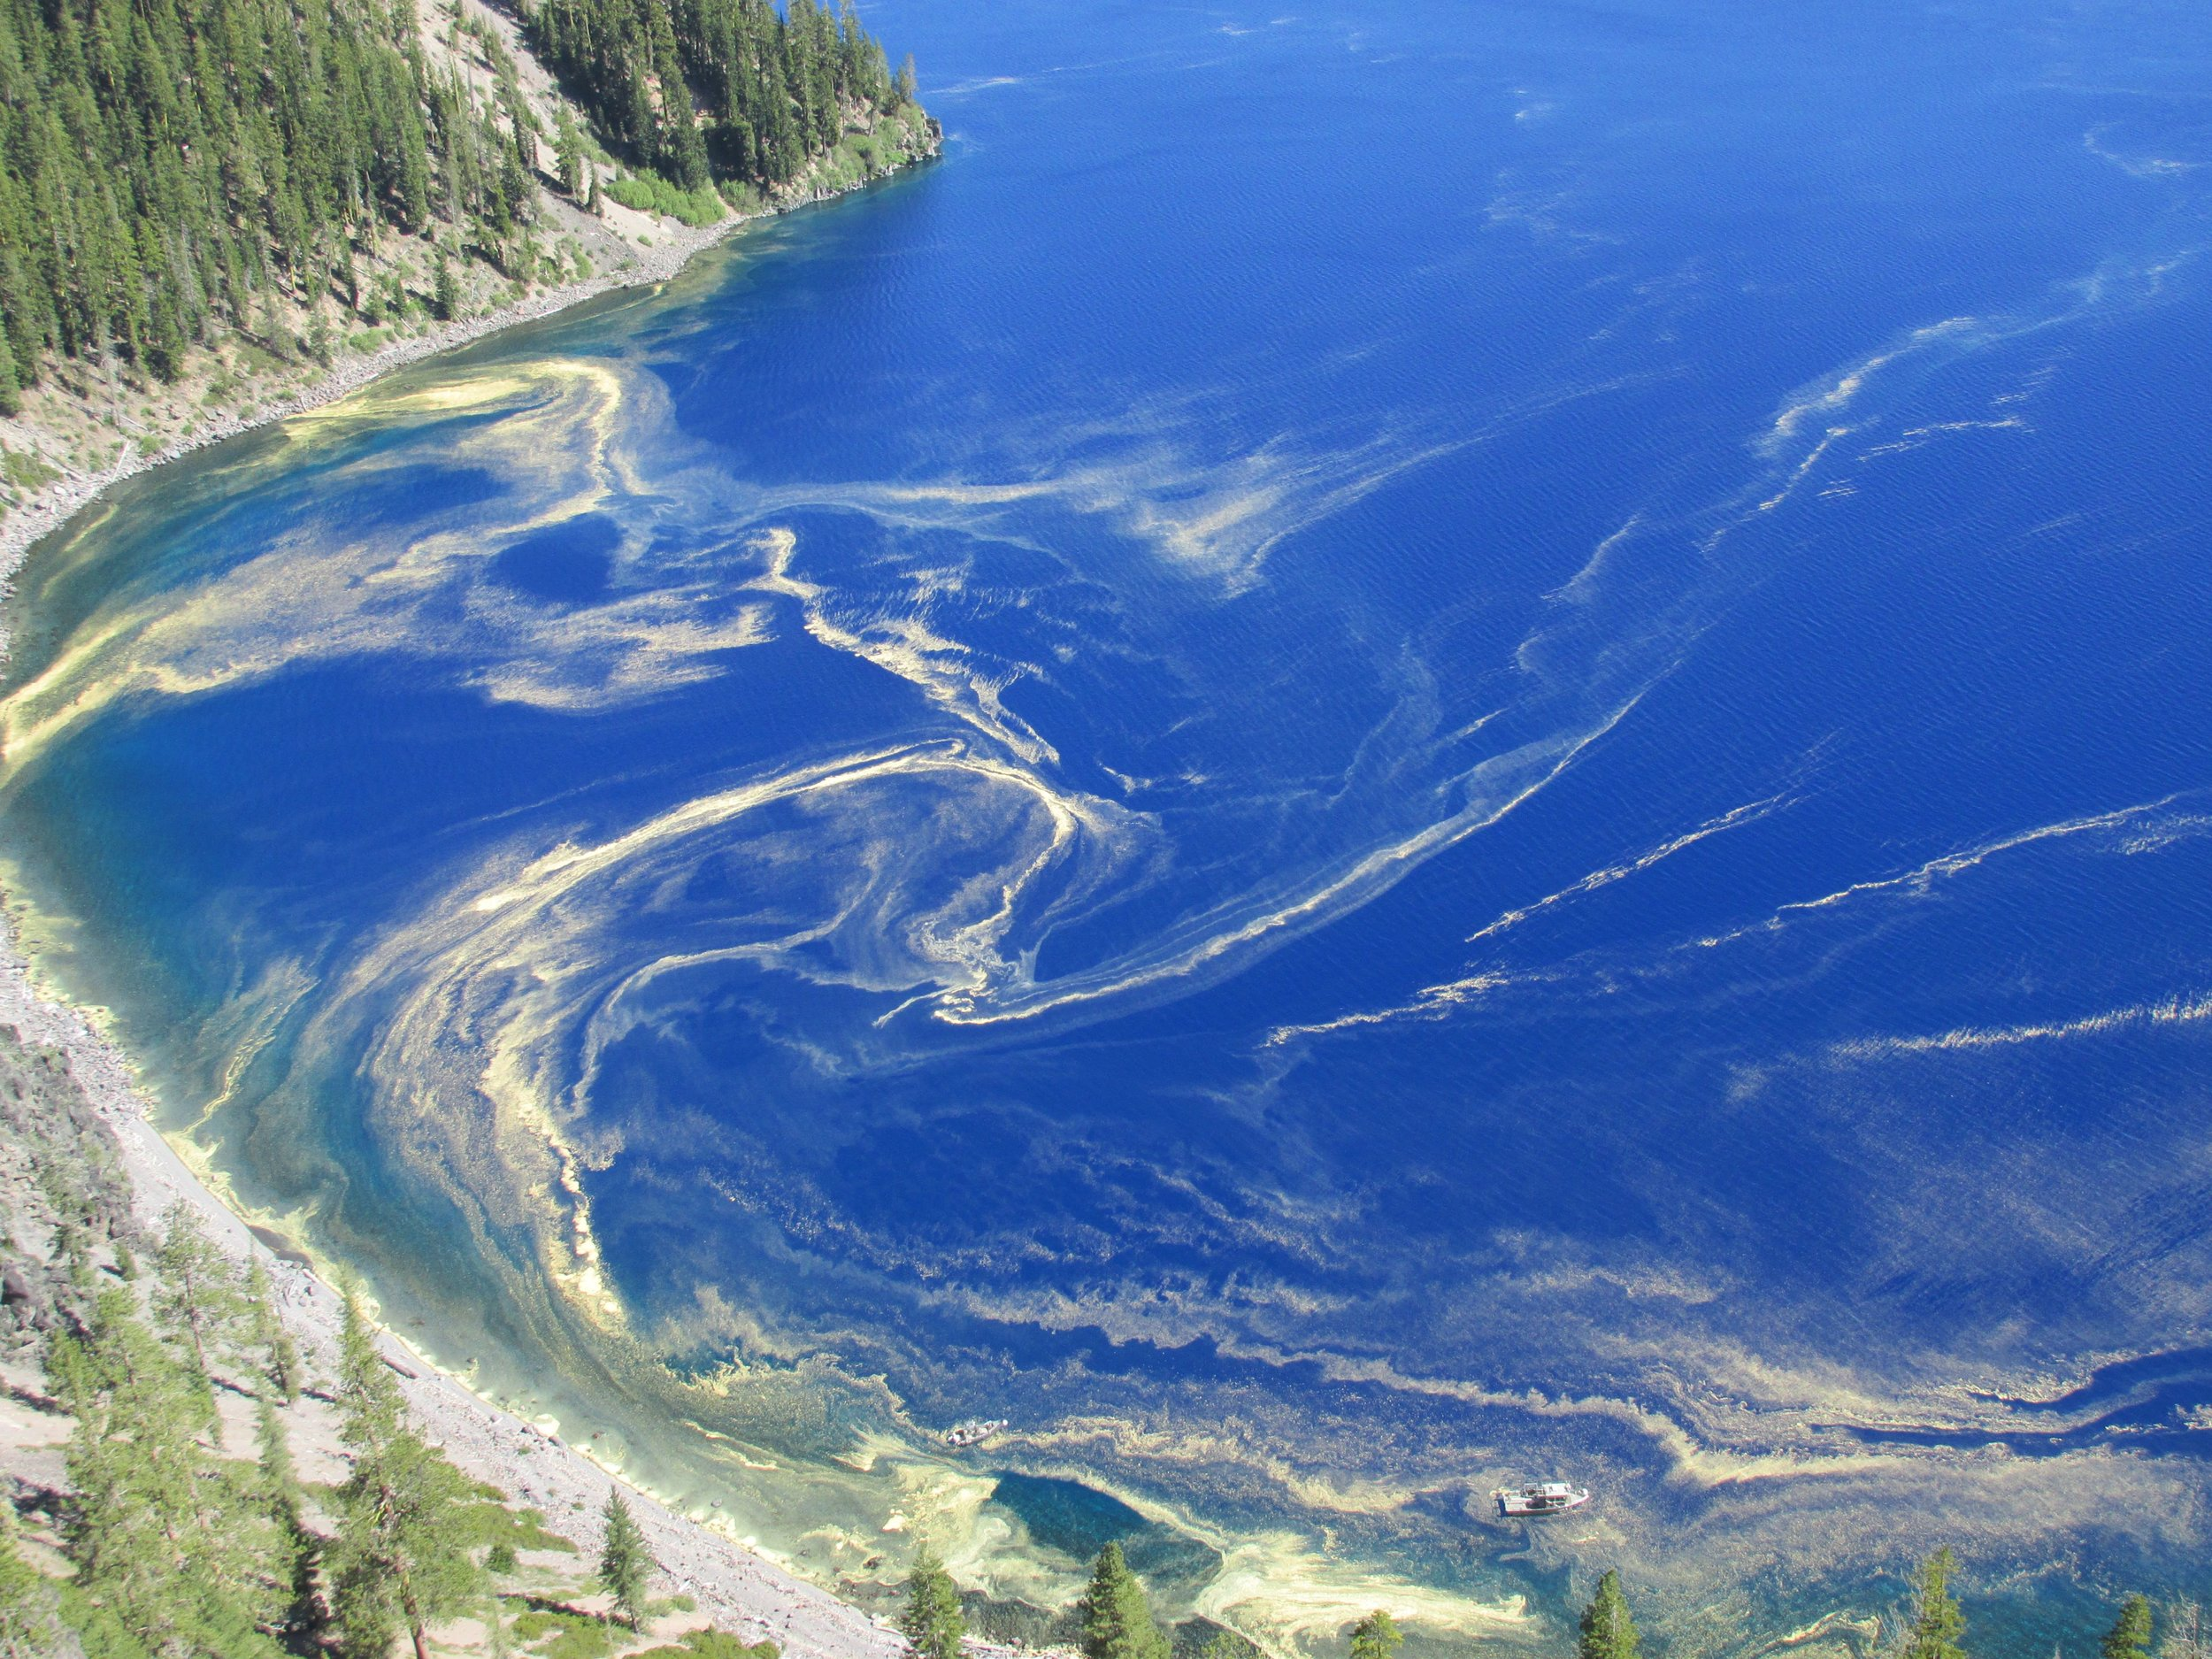 Pine pollen in Crater Lake, Oregon. Photo by Tanya Muzumdar.